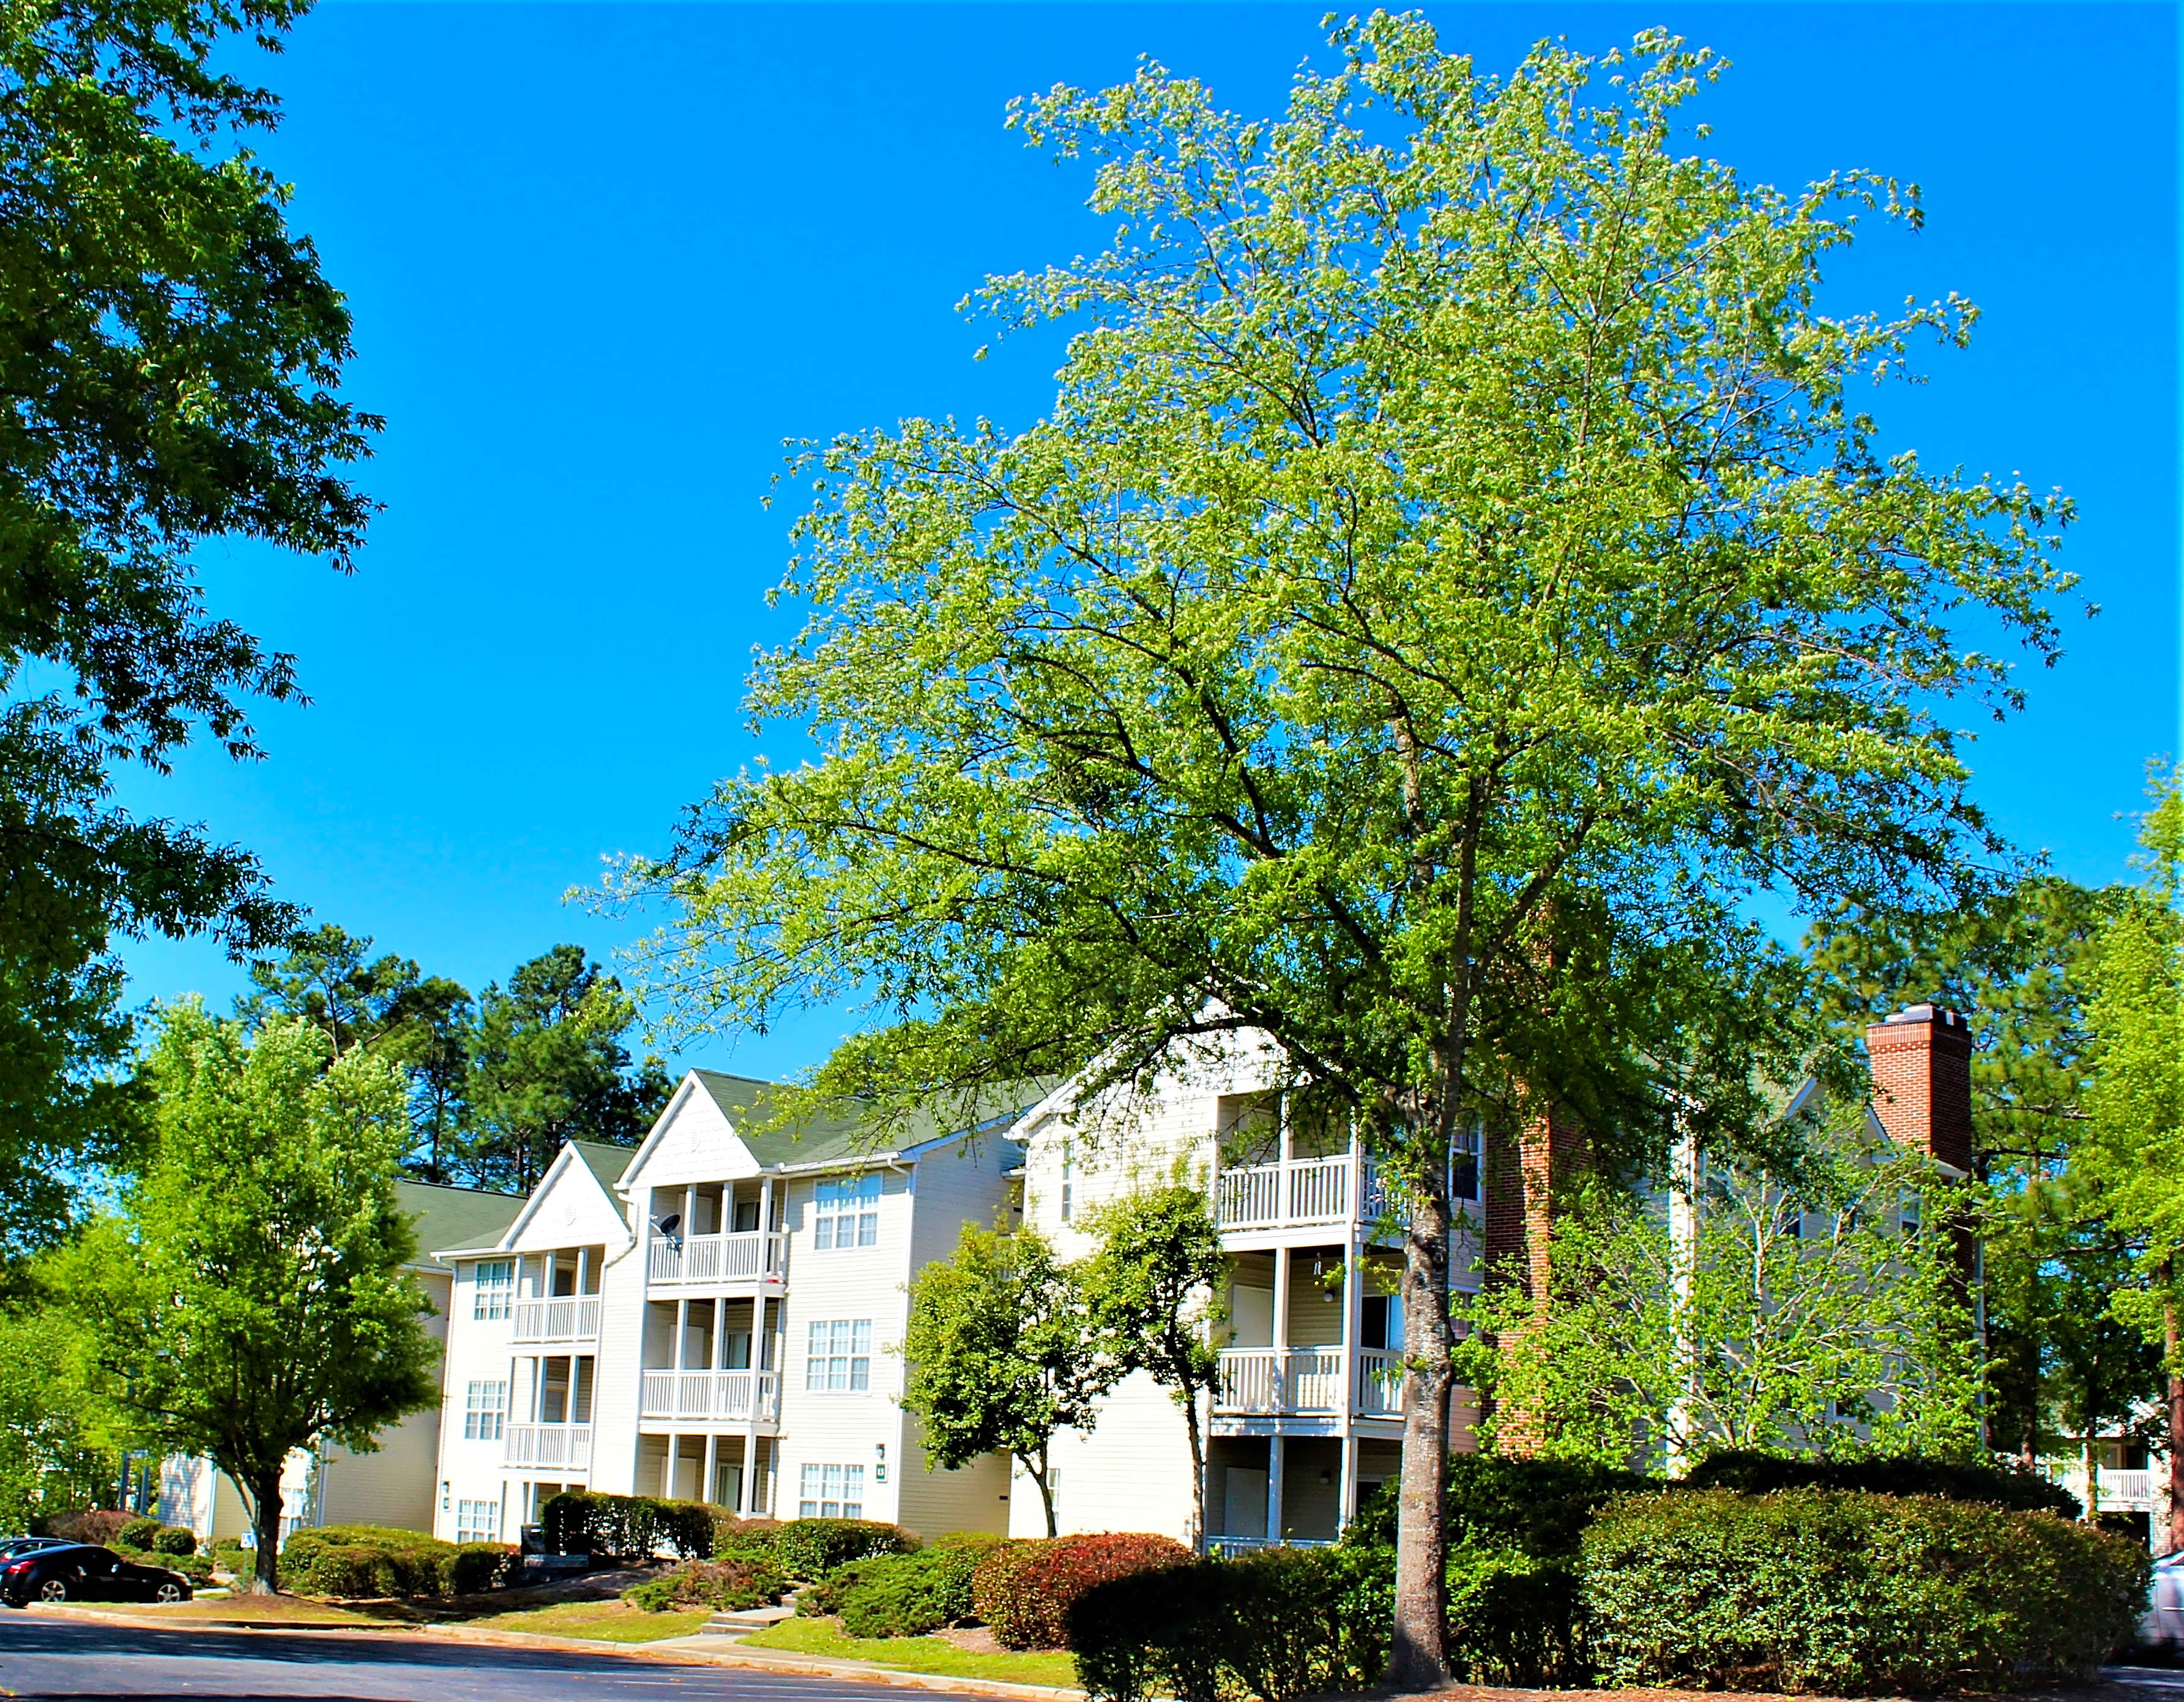 Apartments Near UofSC Greenbrier Apartments for University of South Carolina Students in Columbia, SC